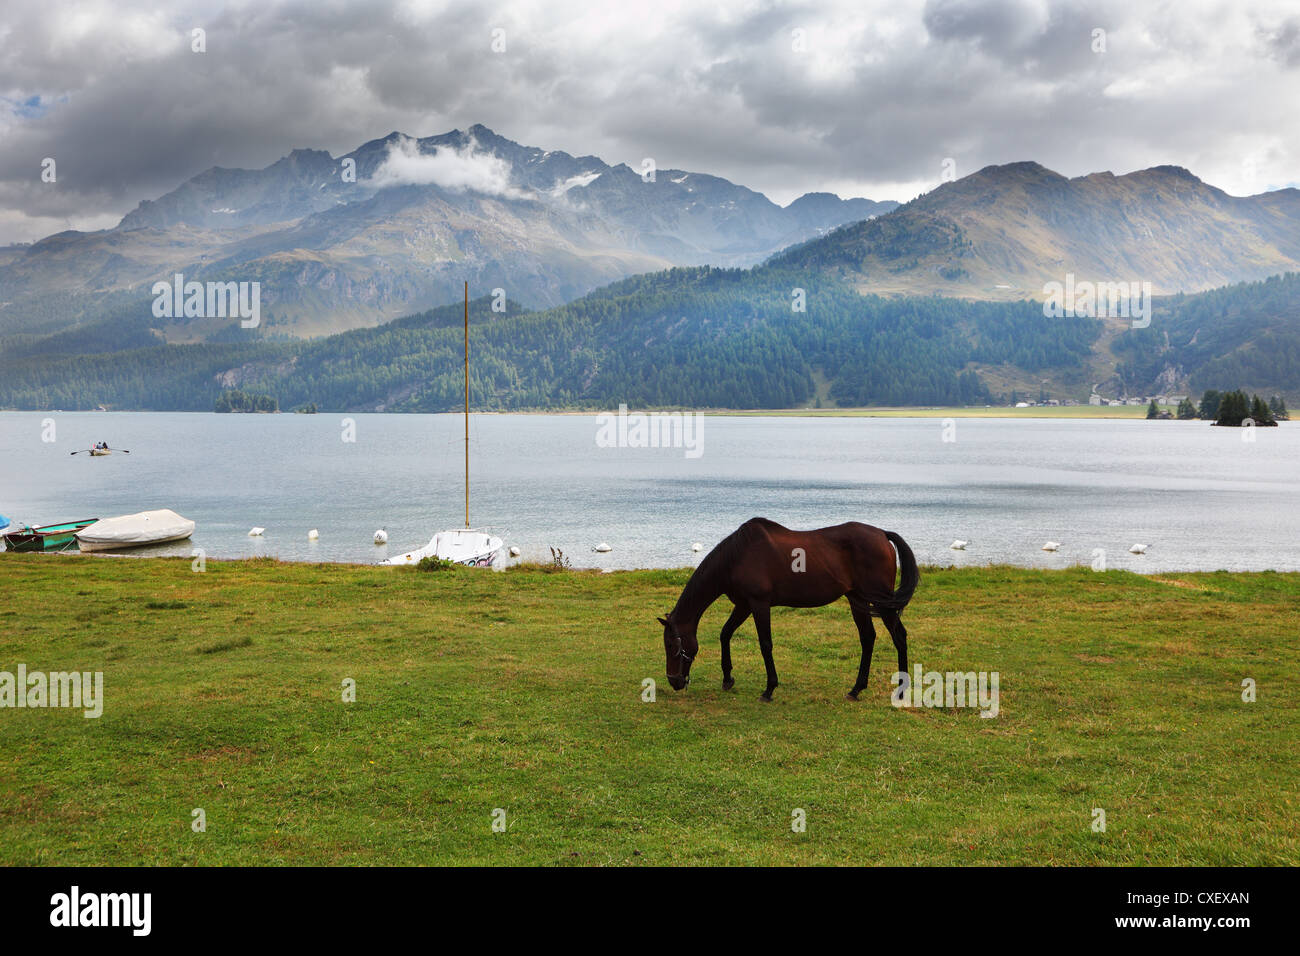 The  bay horse near the moored yachts - Stock Image